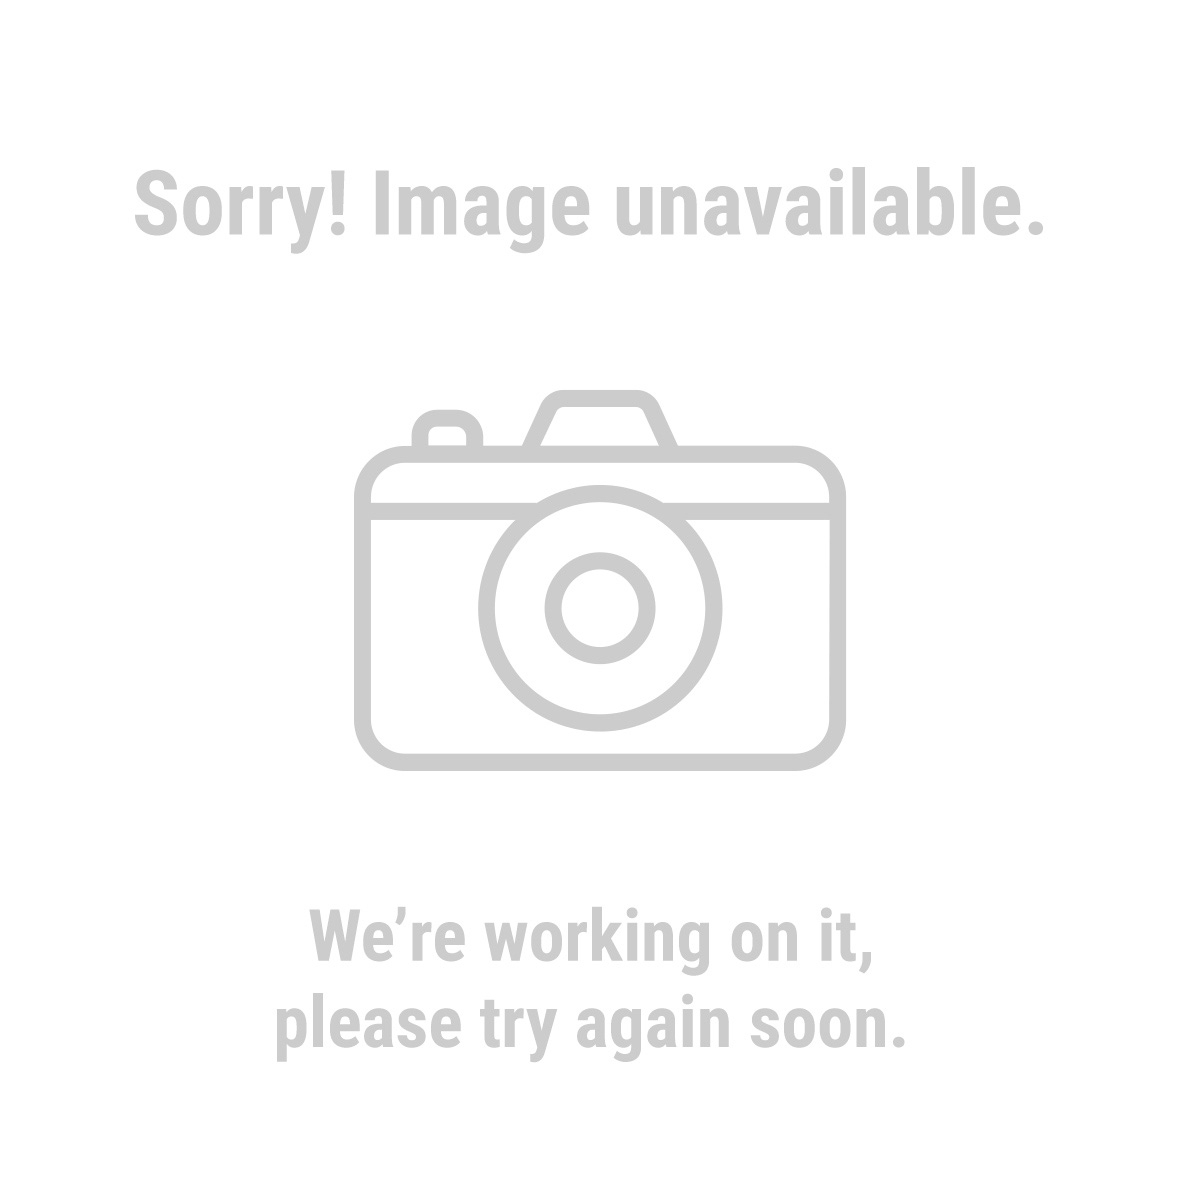 Storehouse 67531 175 Piece Sheet Metal Screws